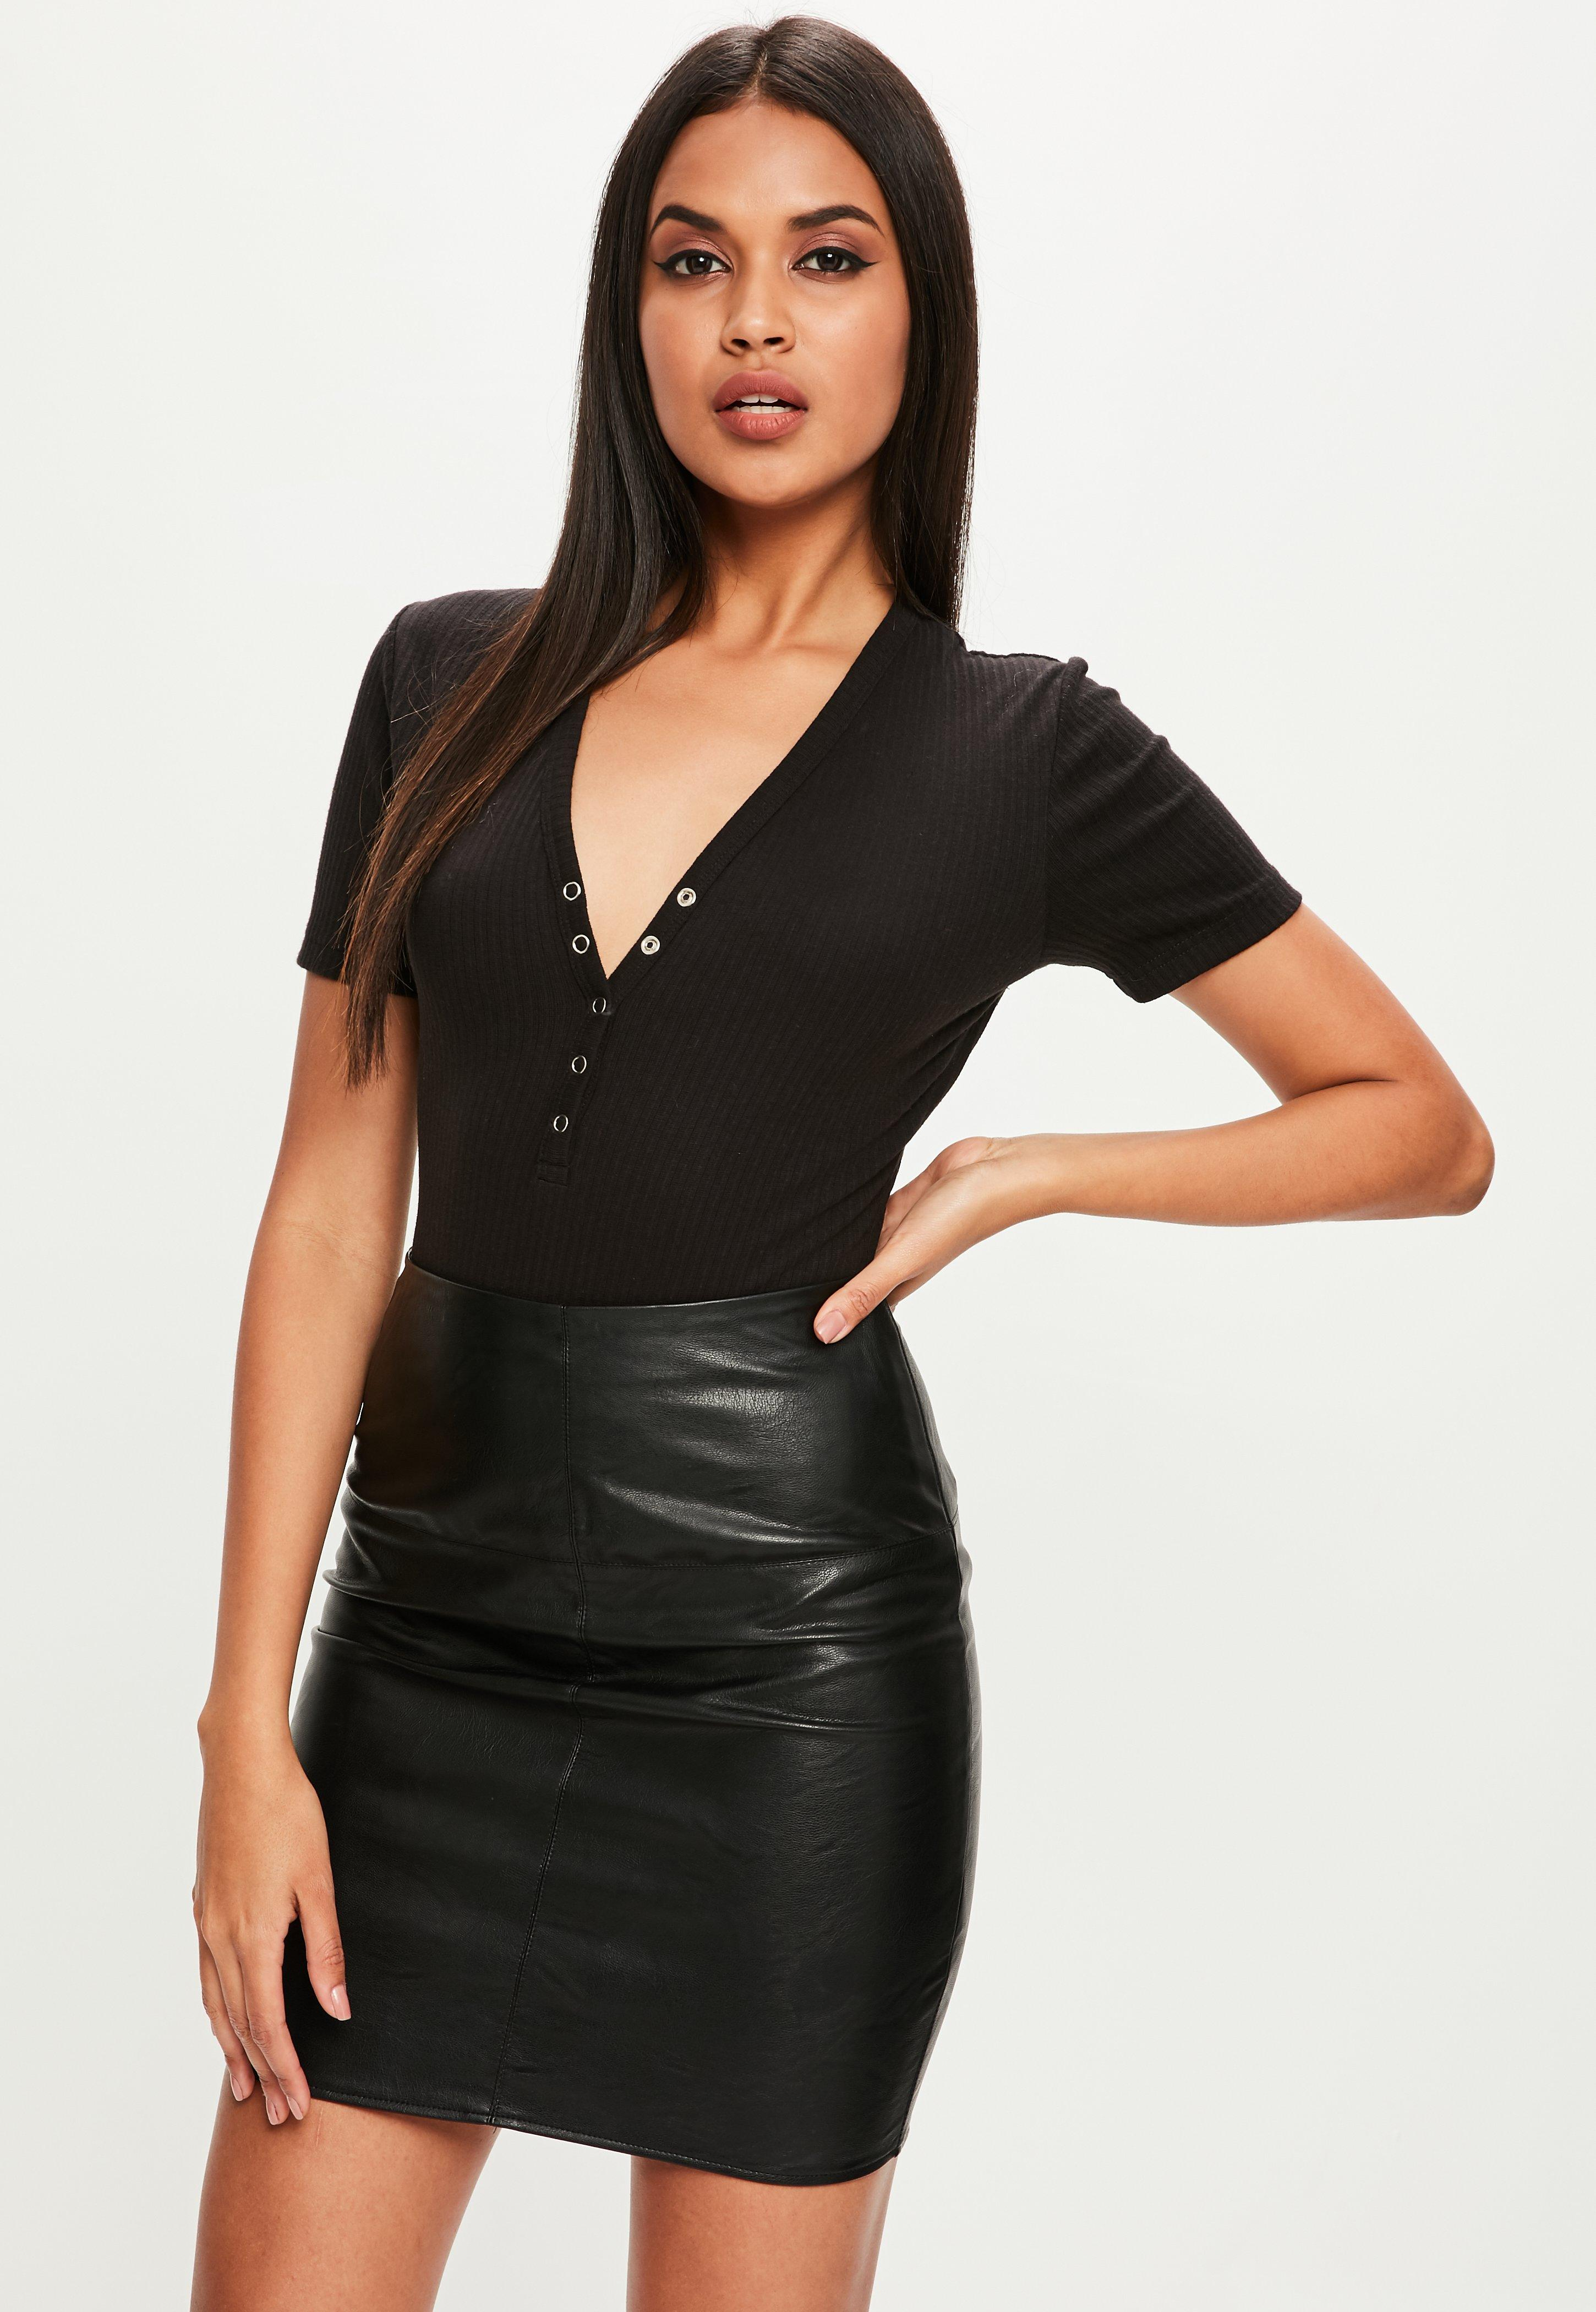 Missguided Tall Ribbed Popper Bodysuit Cheap Fashionable Outlet Deals Outlet Sale Limited Edition For Sale Vz10W